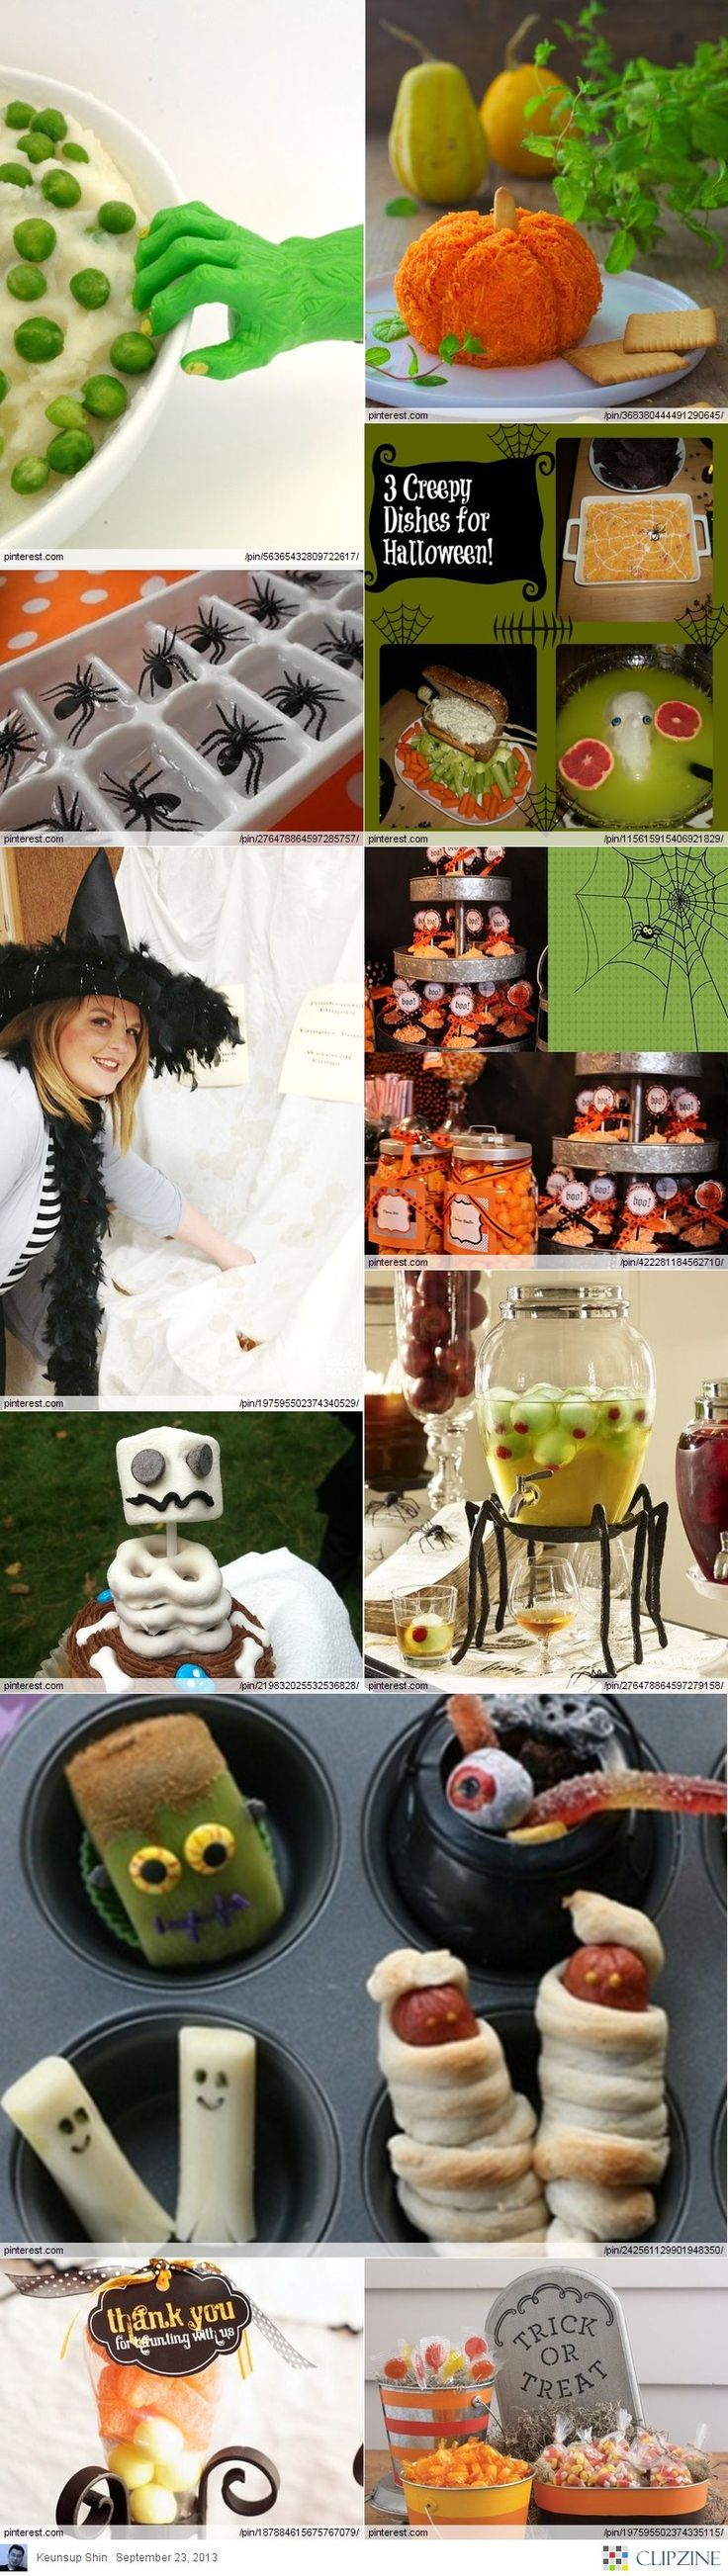 110 best Halloween party images on Pinterest